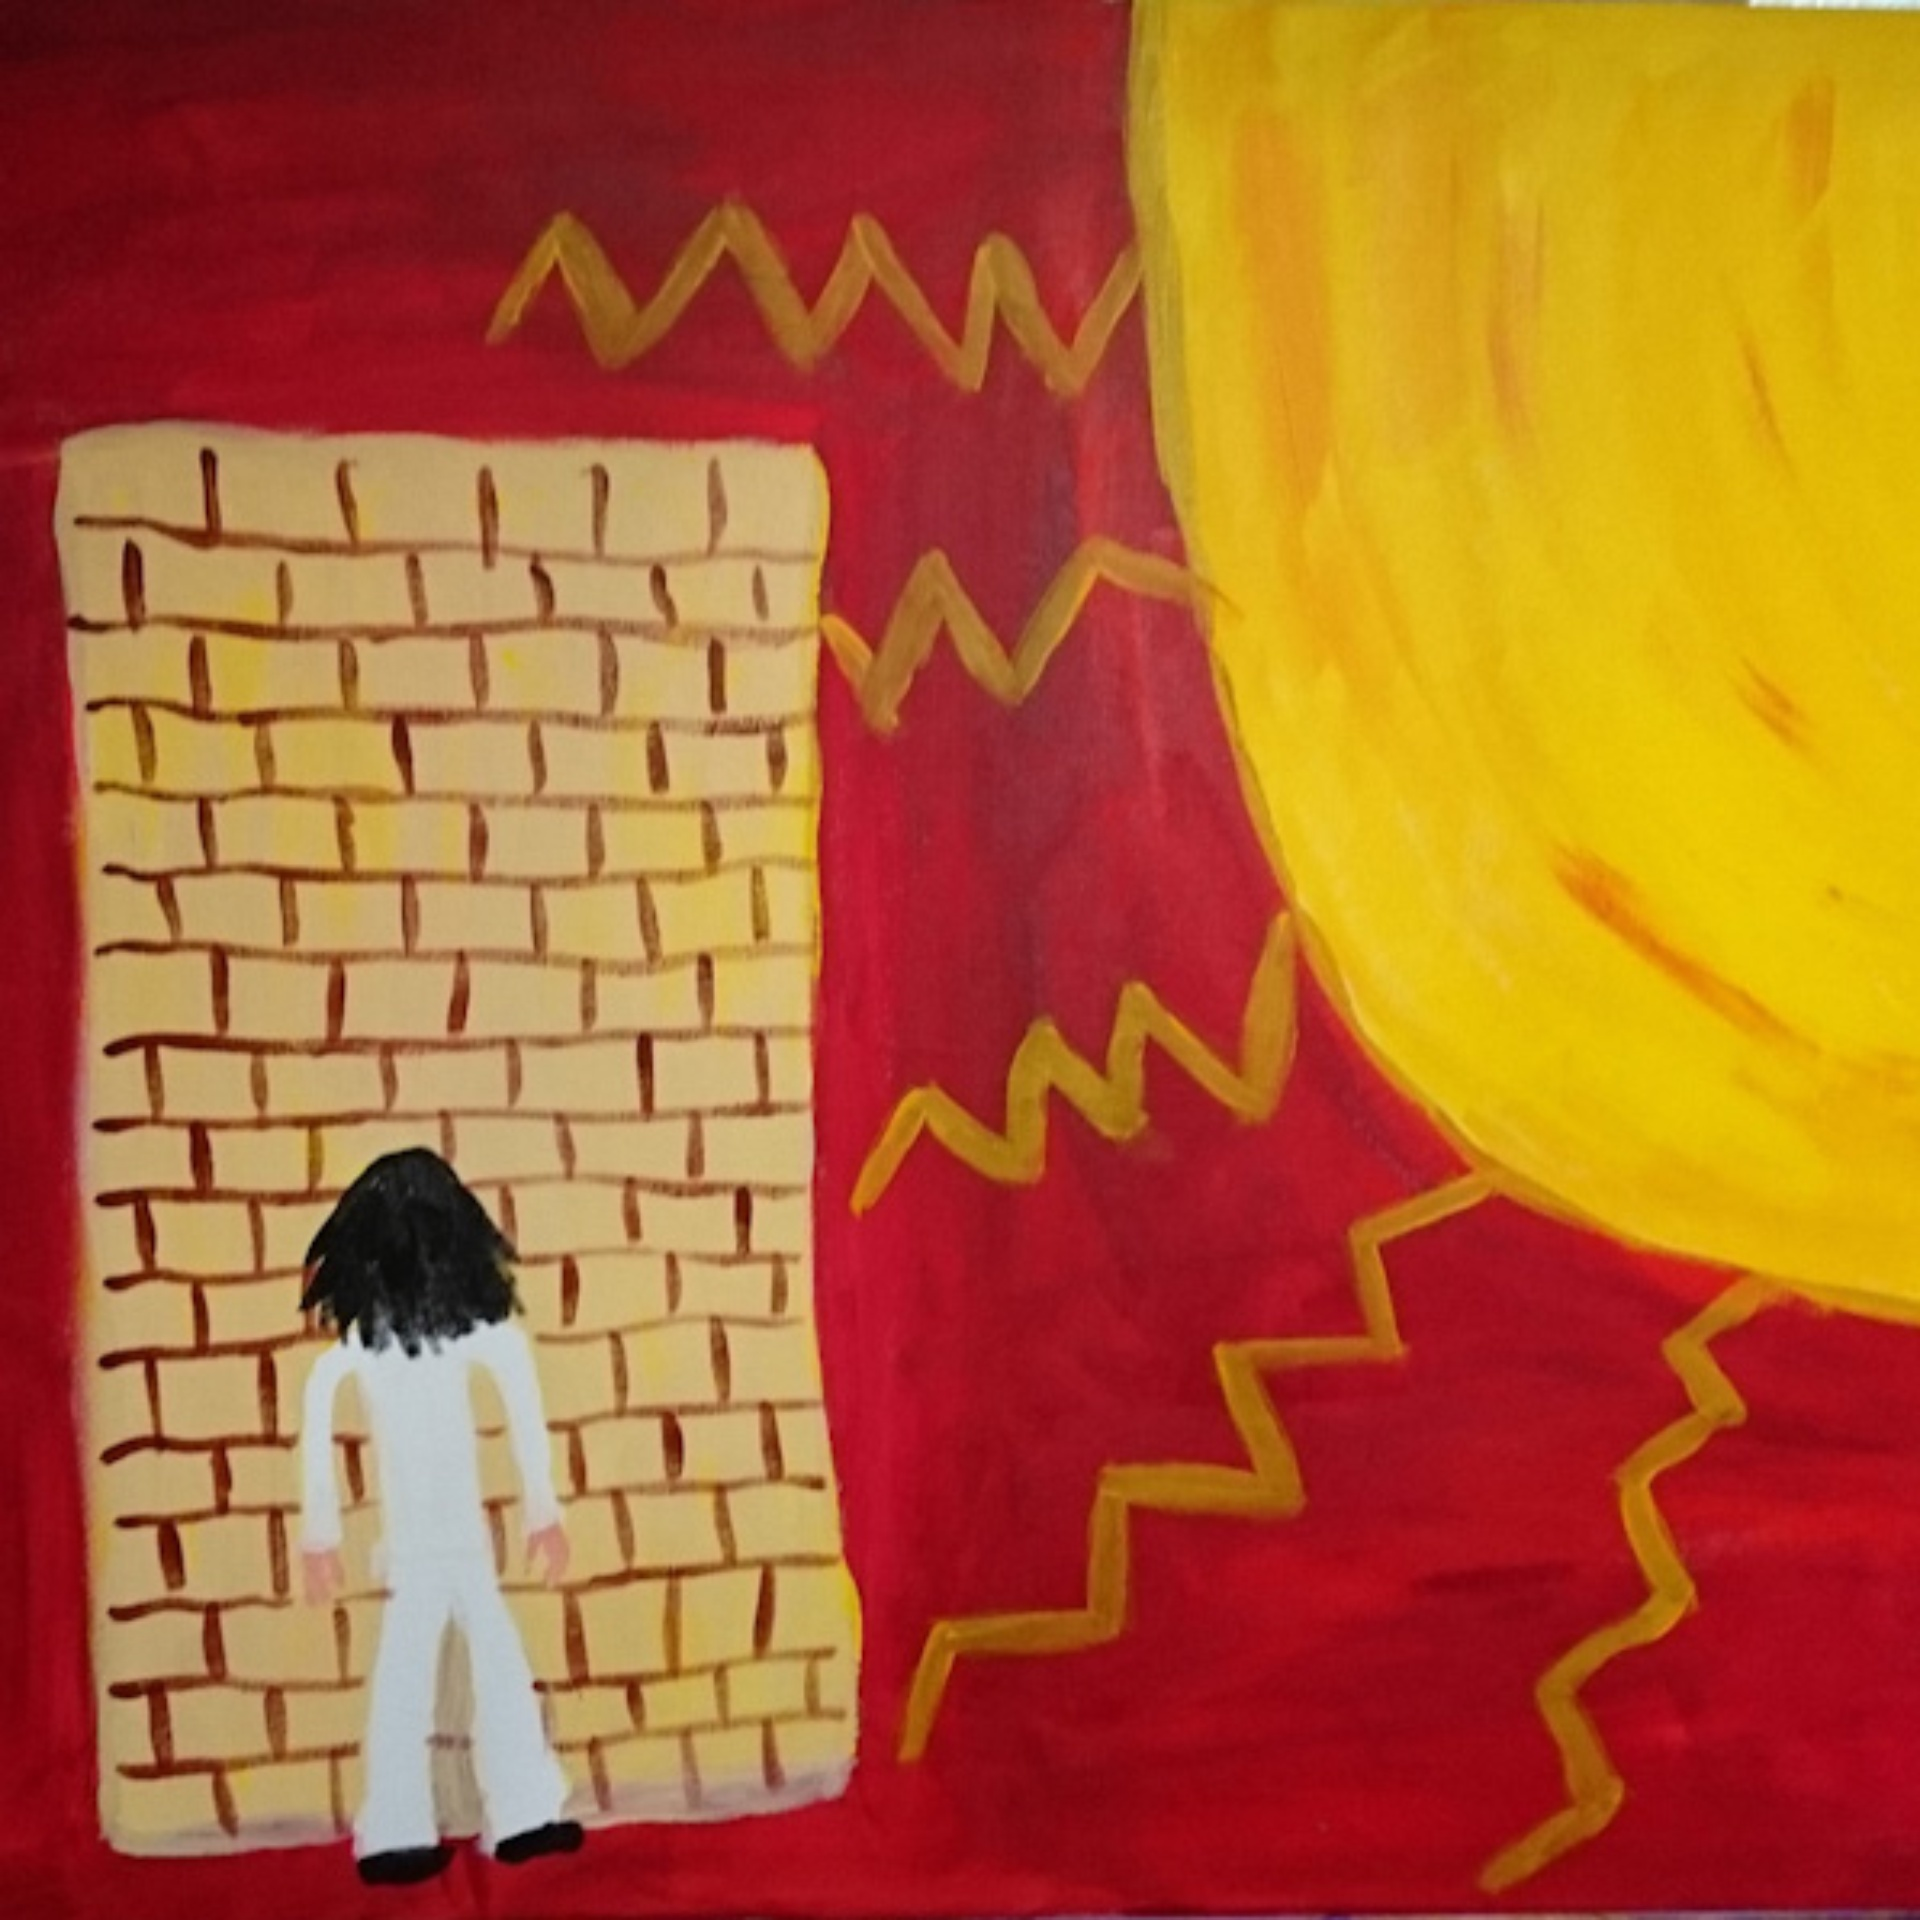 A pillar box red painted background. To the right a large bright yellow sun, jagged rays like lightening stretch across the canvas. To the left a block brick wall. A figure wearing white, with long black hair stands facing the wall, back to the viewer.